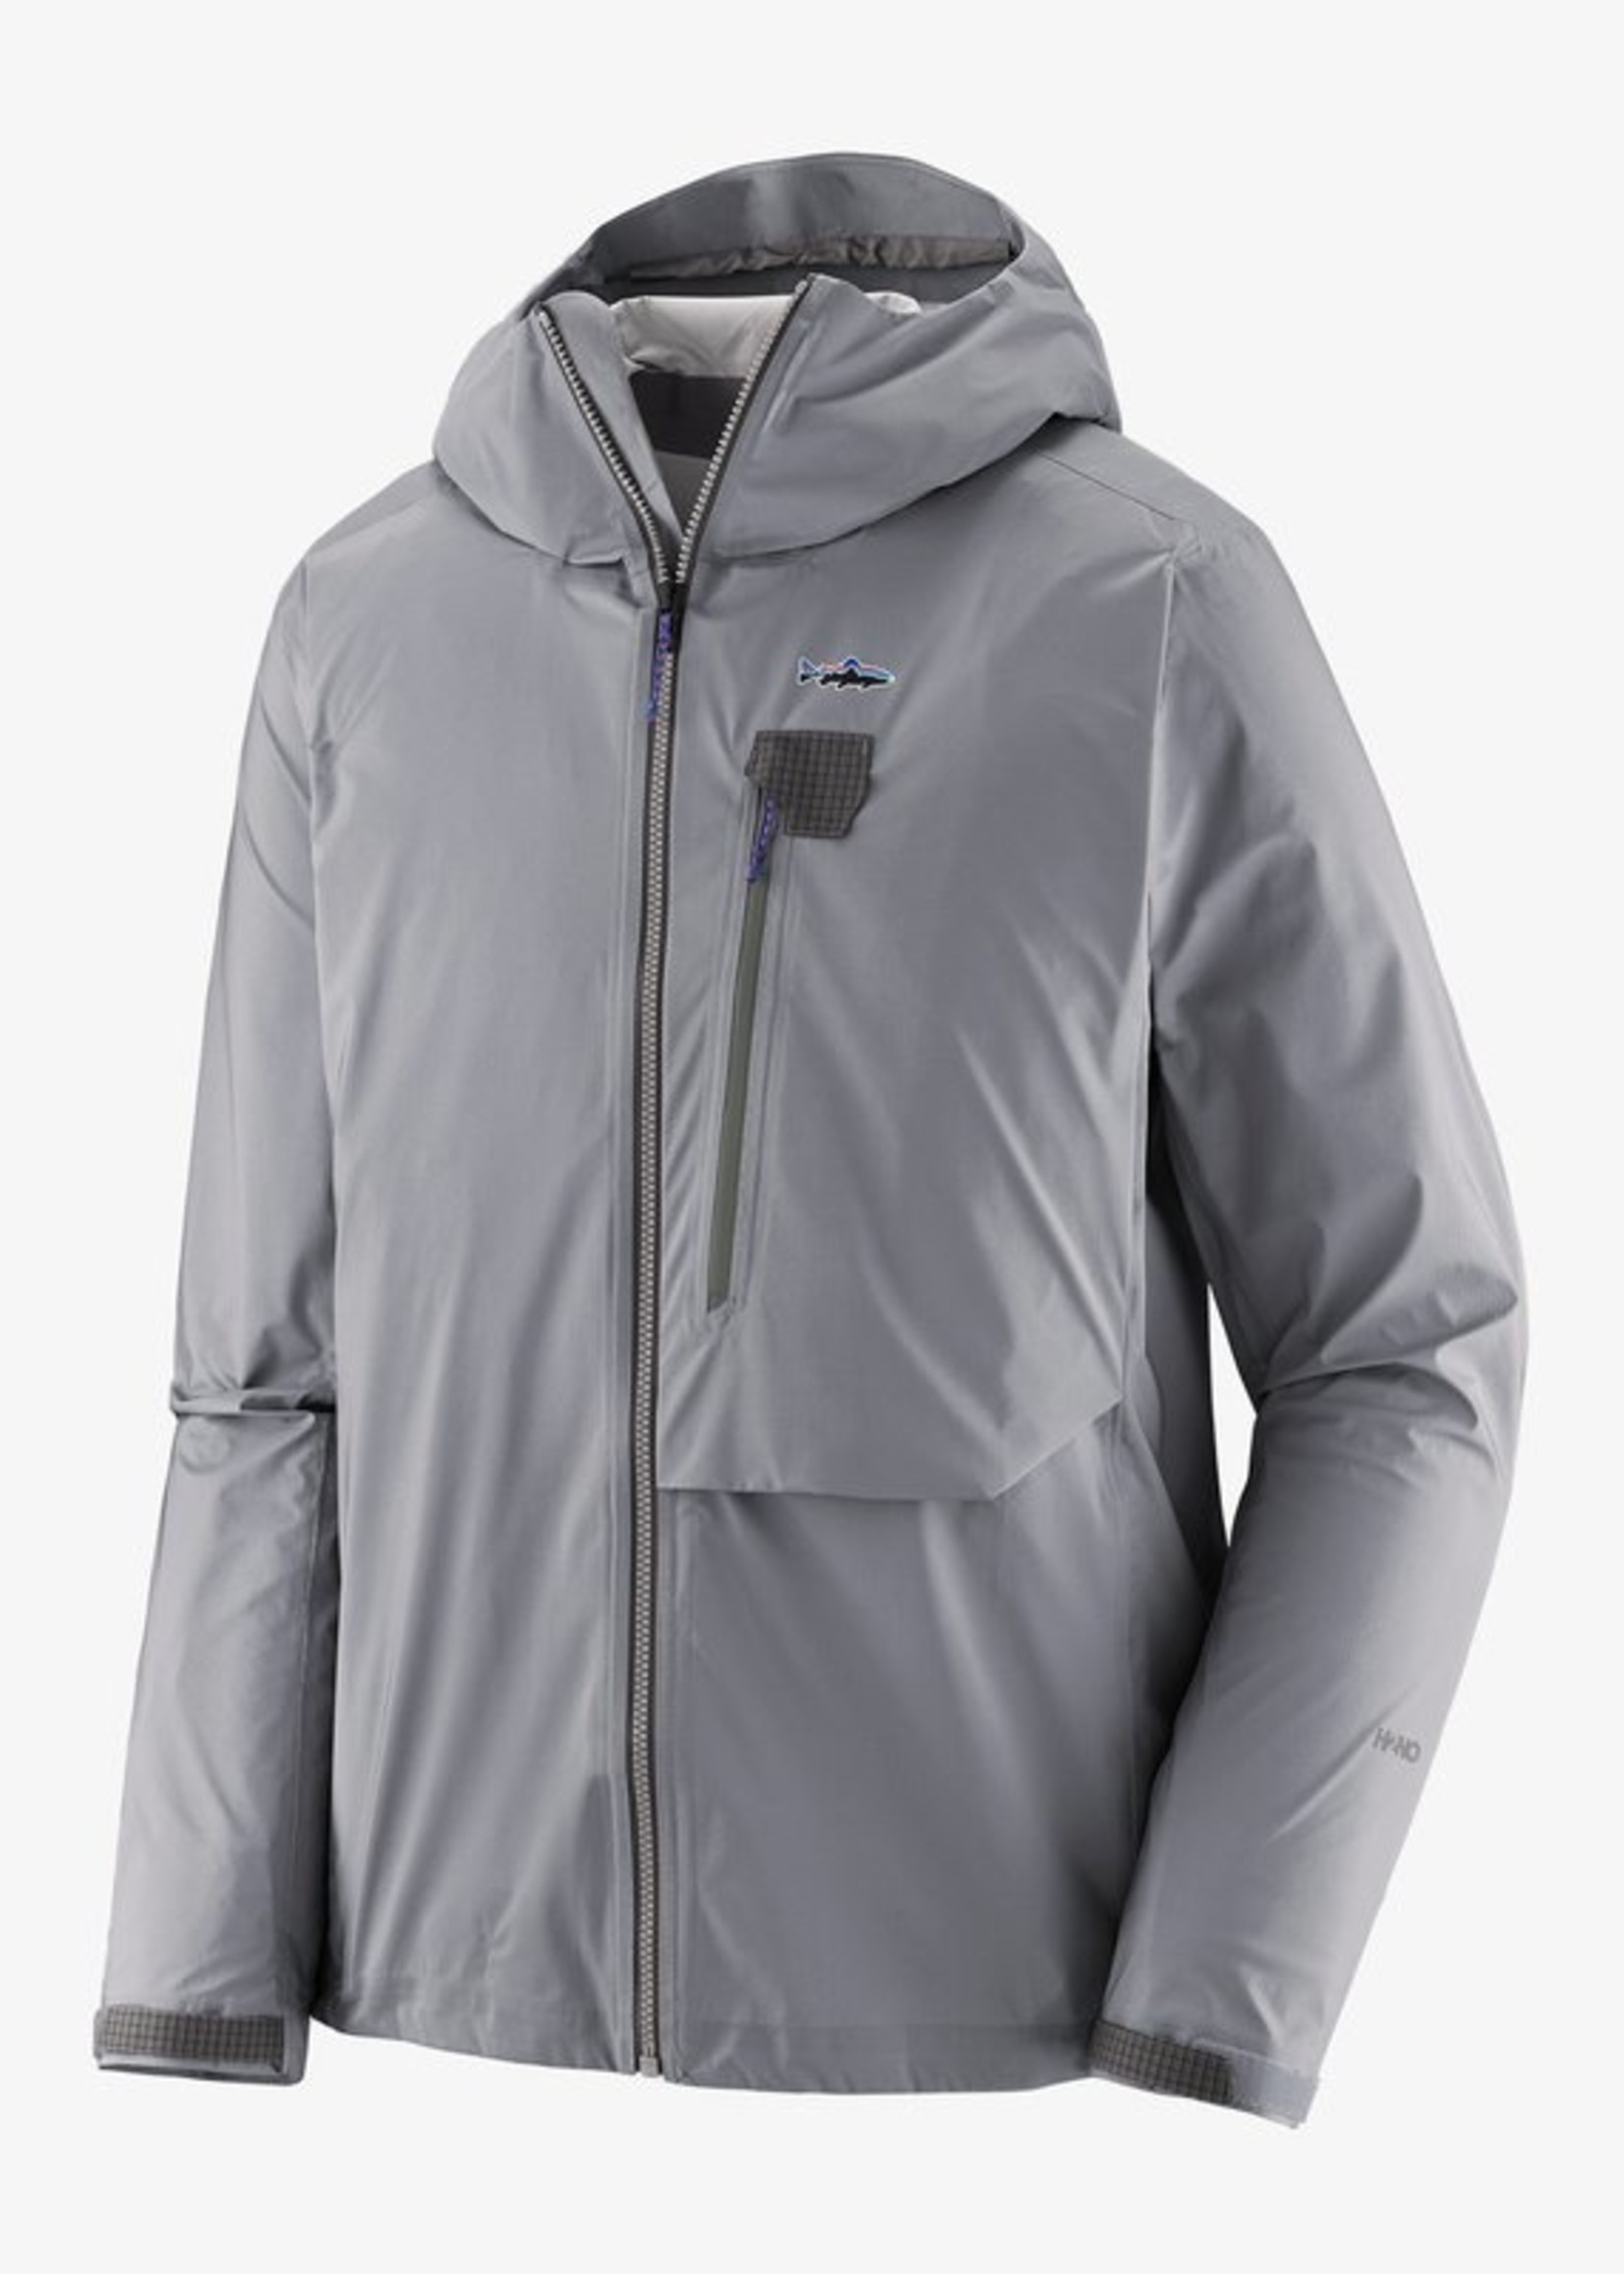 PATAGONIA M's ULTRALIGHT PACKABLE JACKET